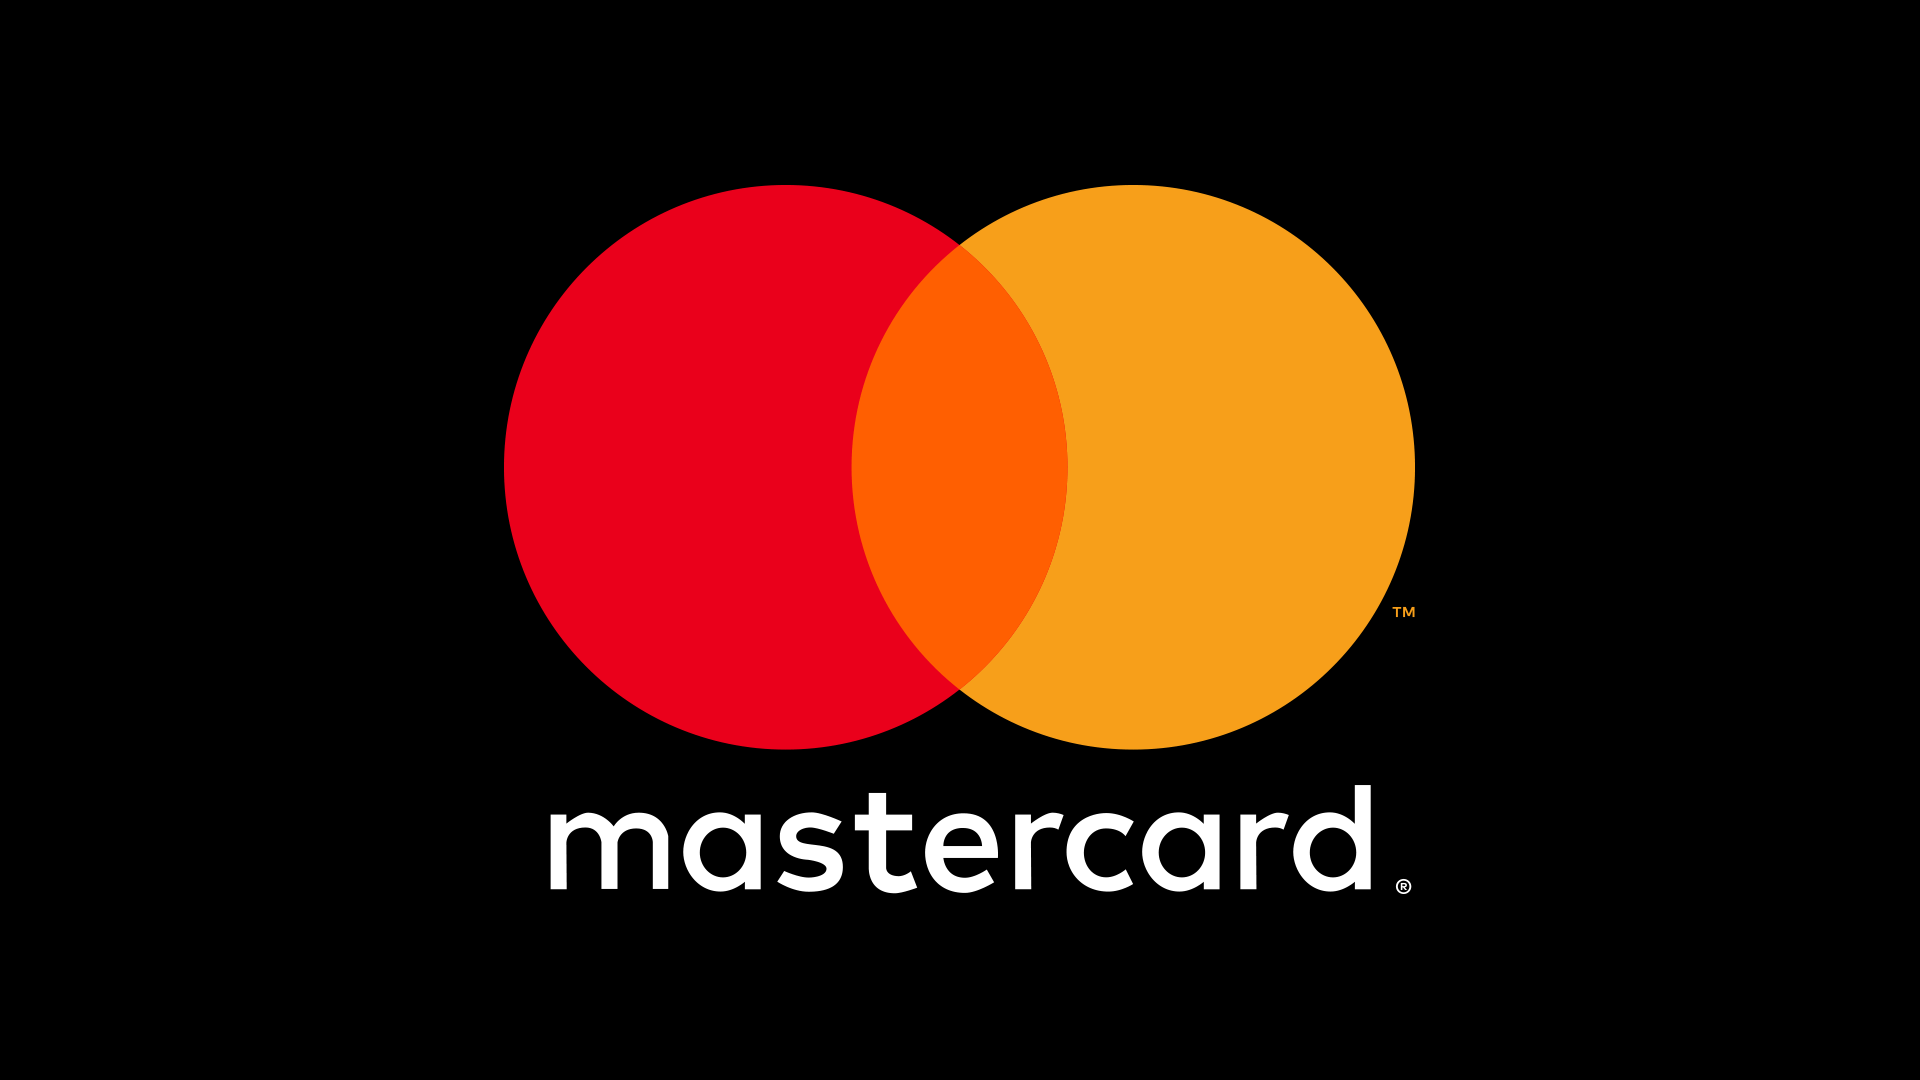 MasterCard Logo - Mastercard's Rebrand: Two Dumb Circles, or Just You? | de la Riva ...